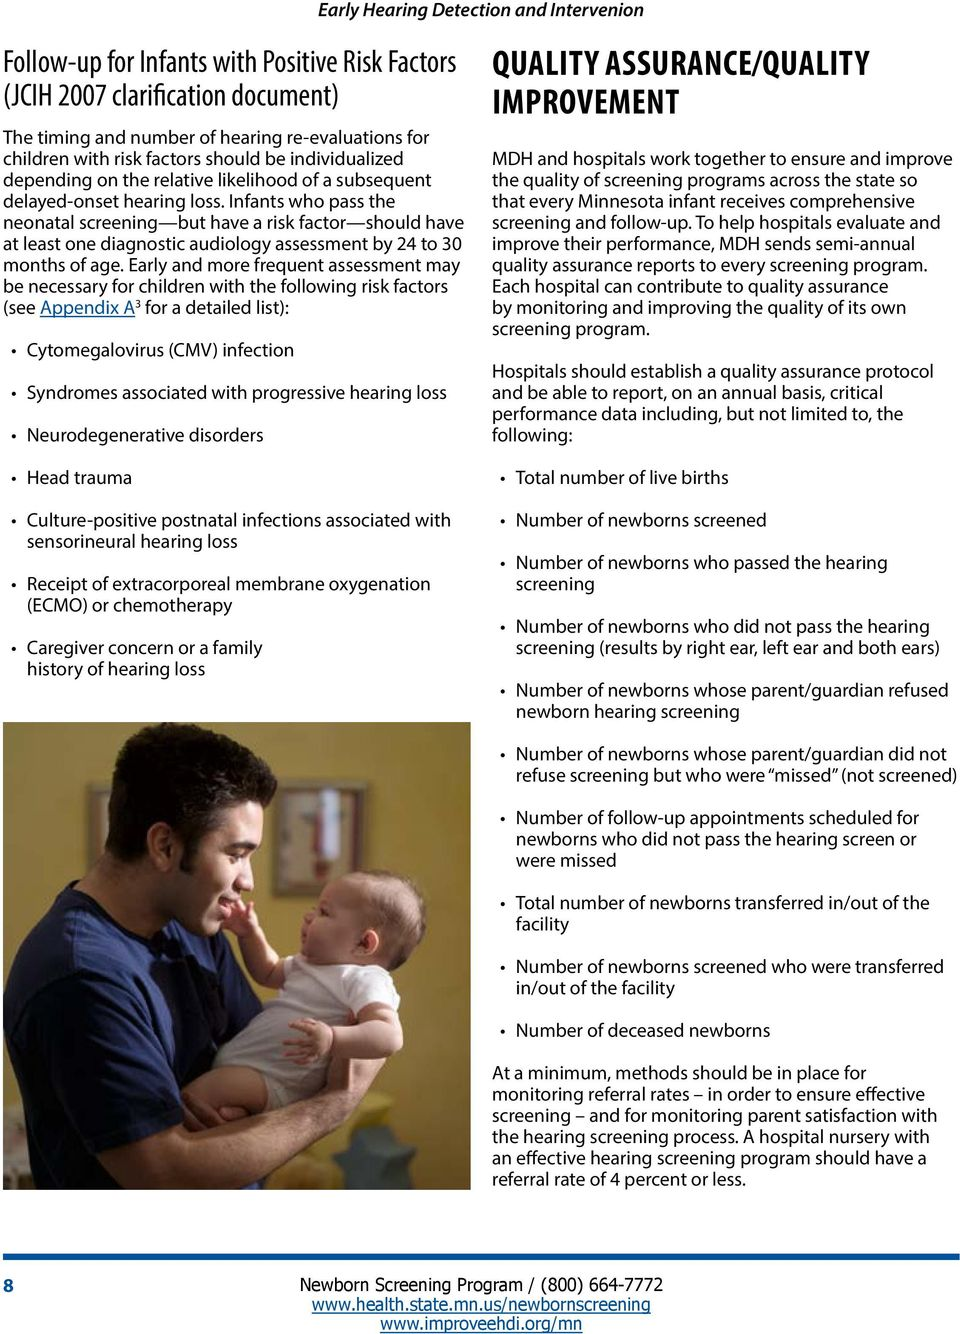 Infants who pass the neonatal screening but have a risk factor should have at least one diagnostic audiology assessment by 24 to 30 months of age.